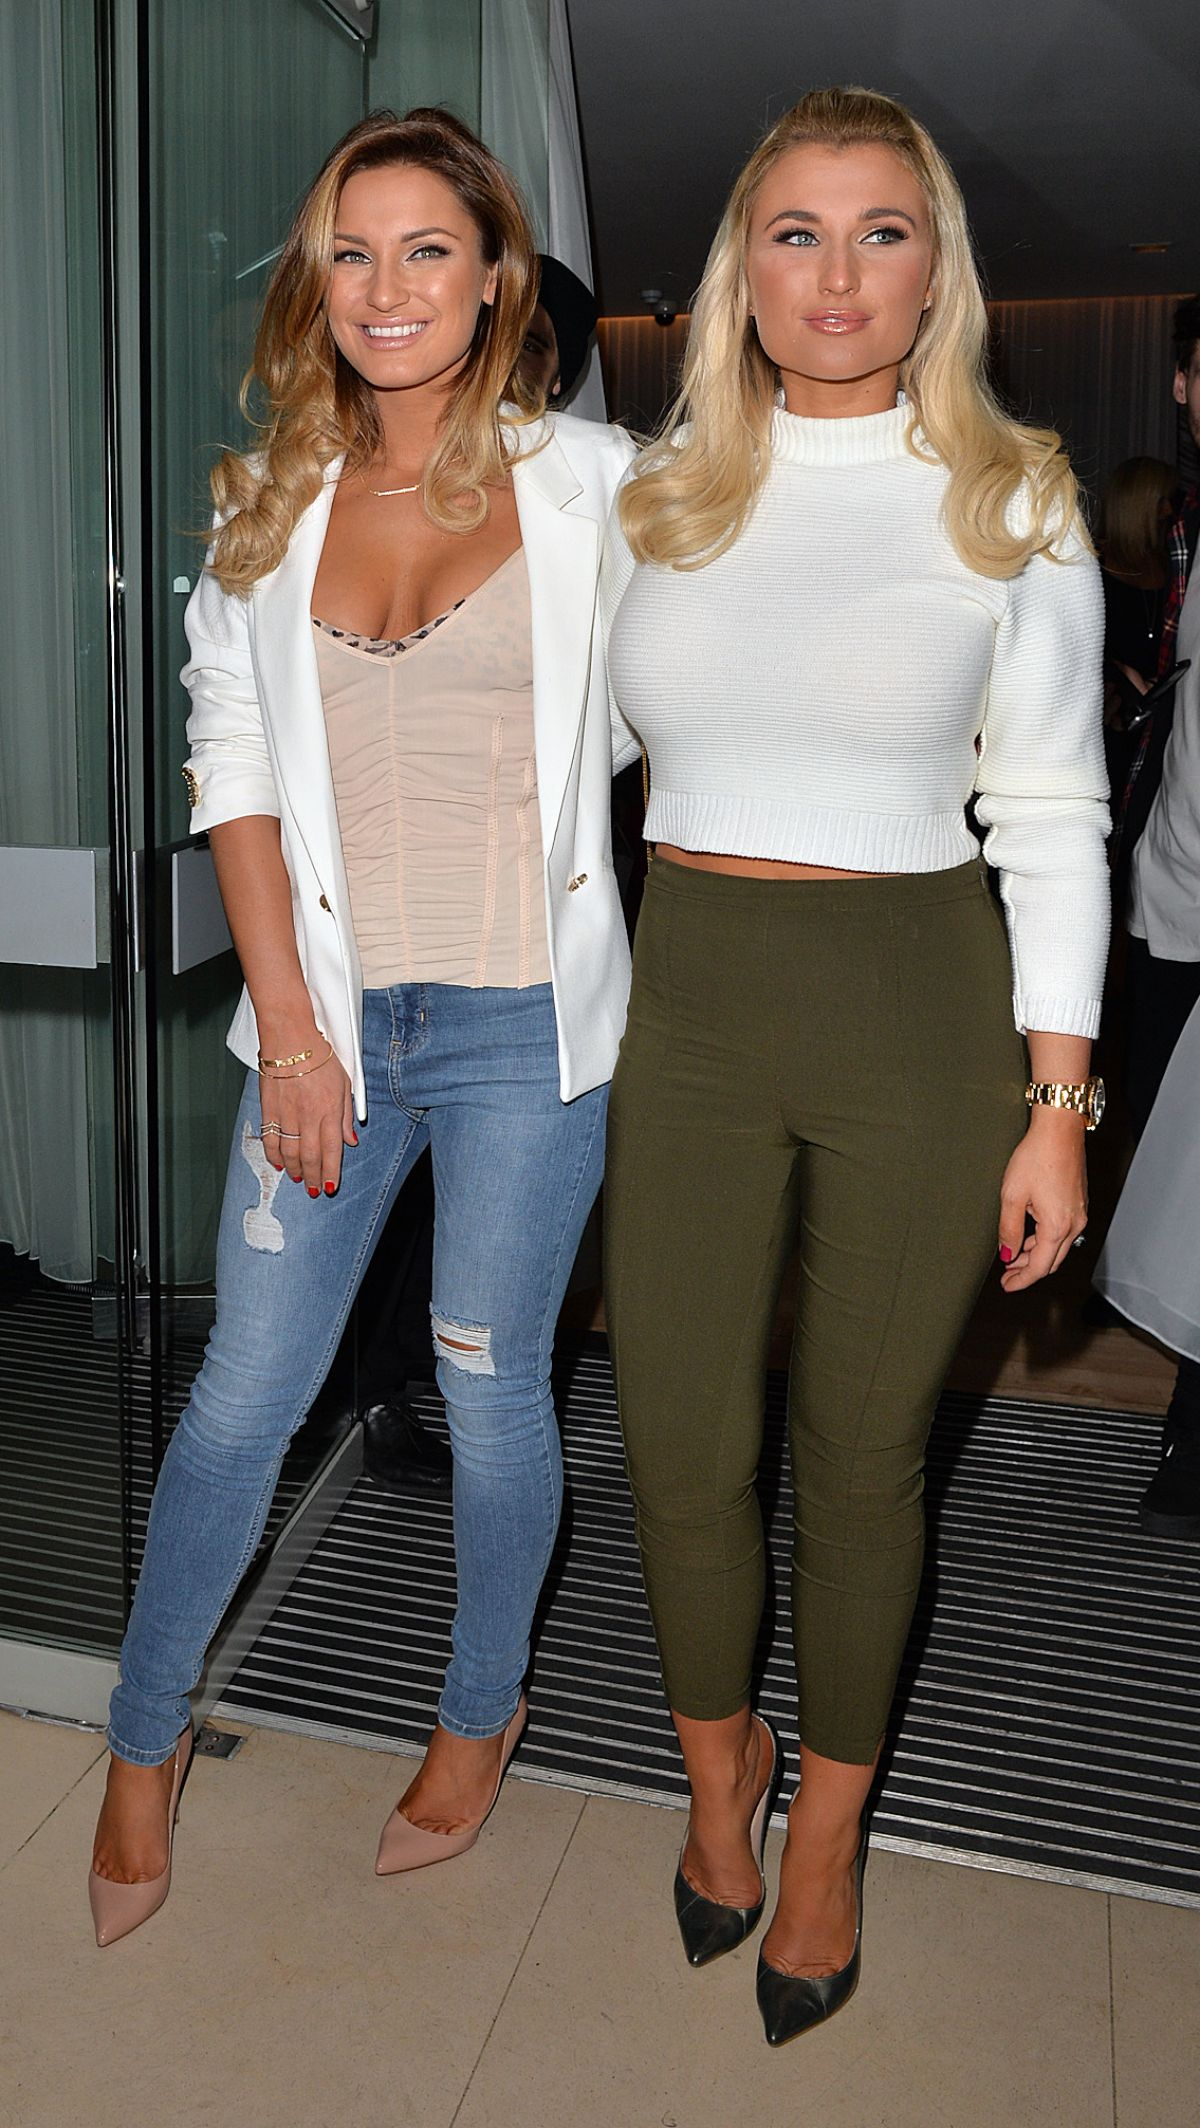 BILLIE and SAM FAIERS at Sanderson Hotel in London